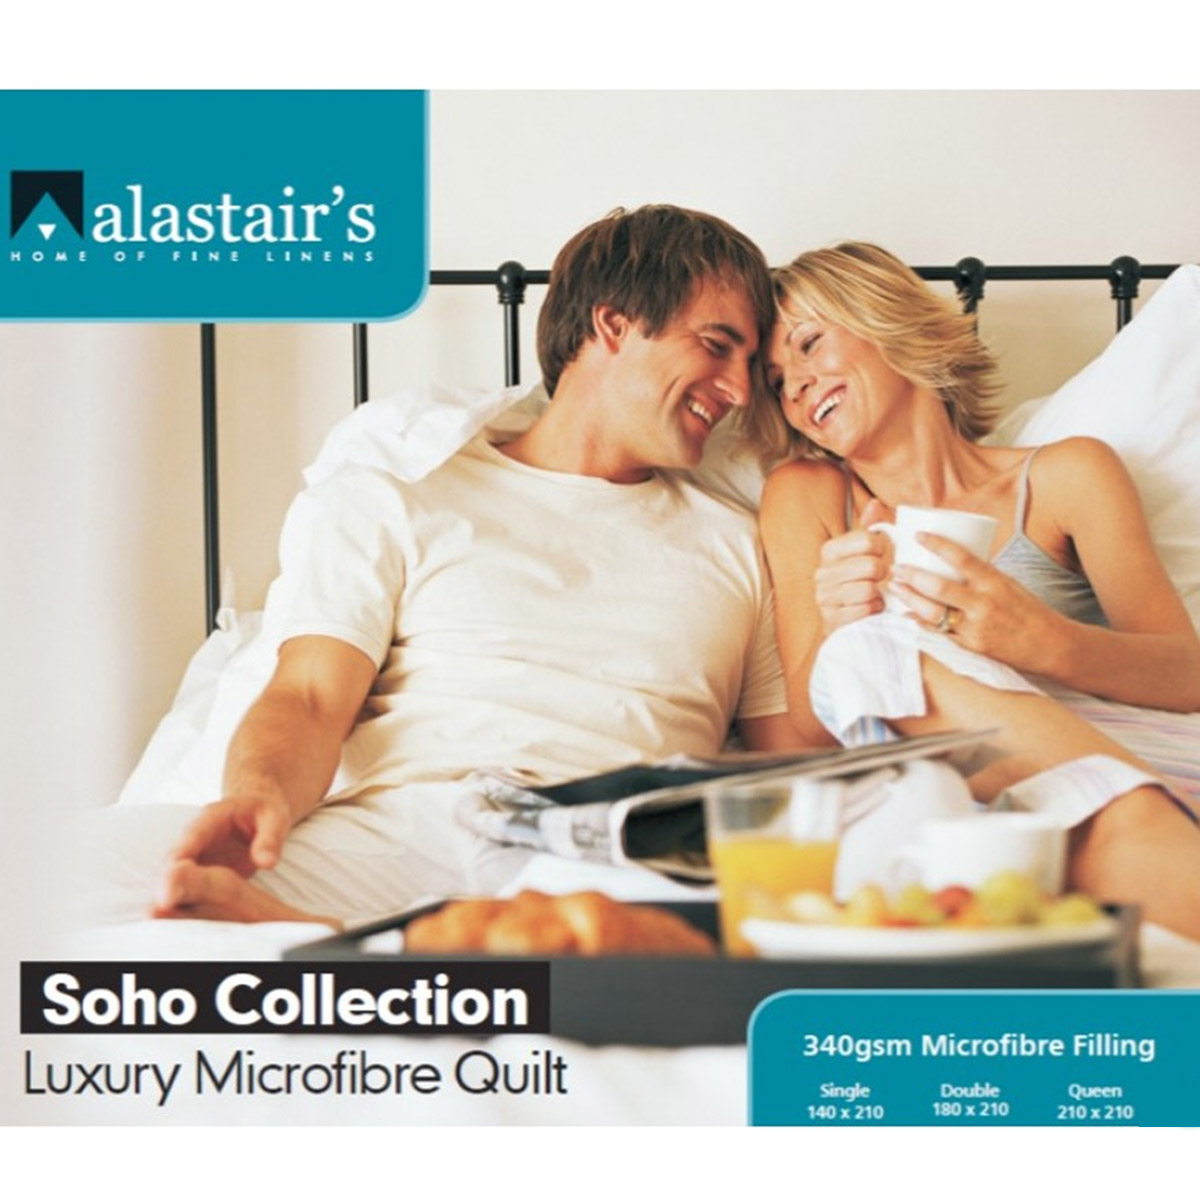 Alastair's Soho Collection Microfibre Quilt